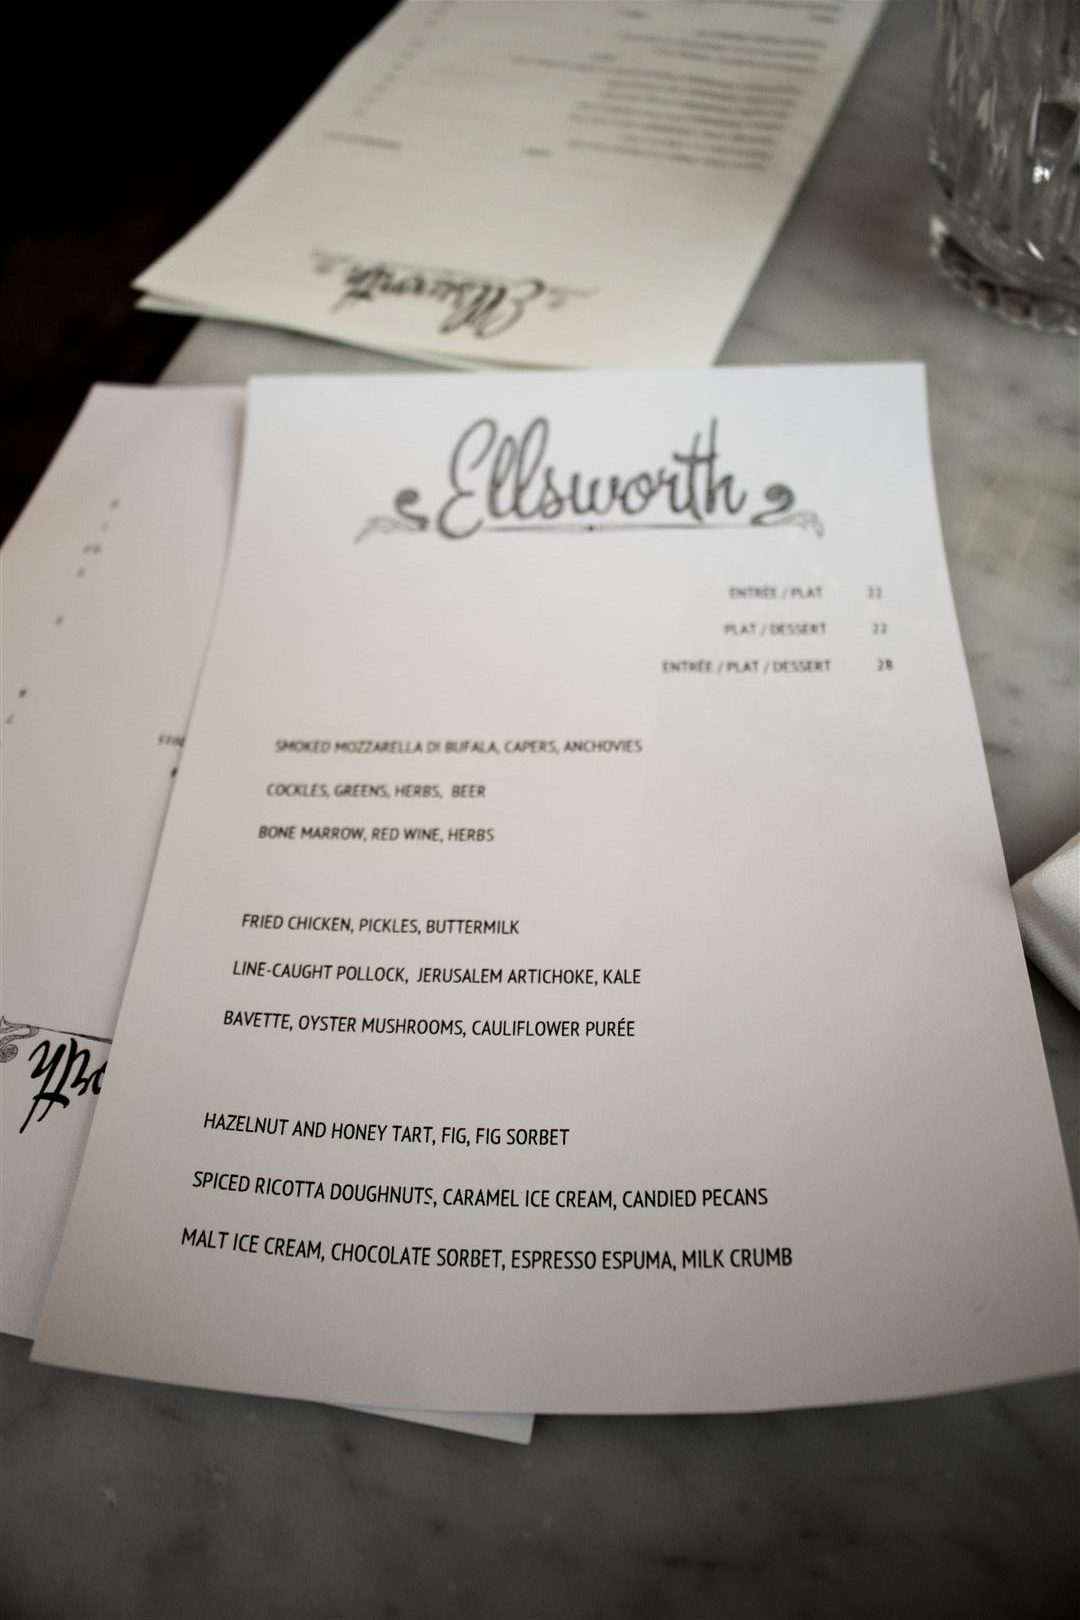 The Ellsworth Menu